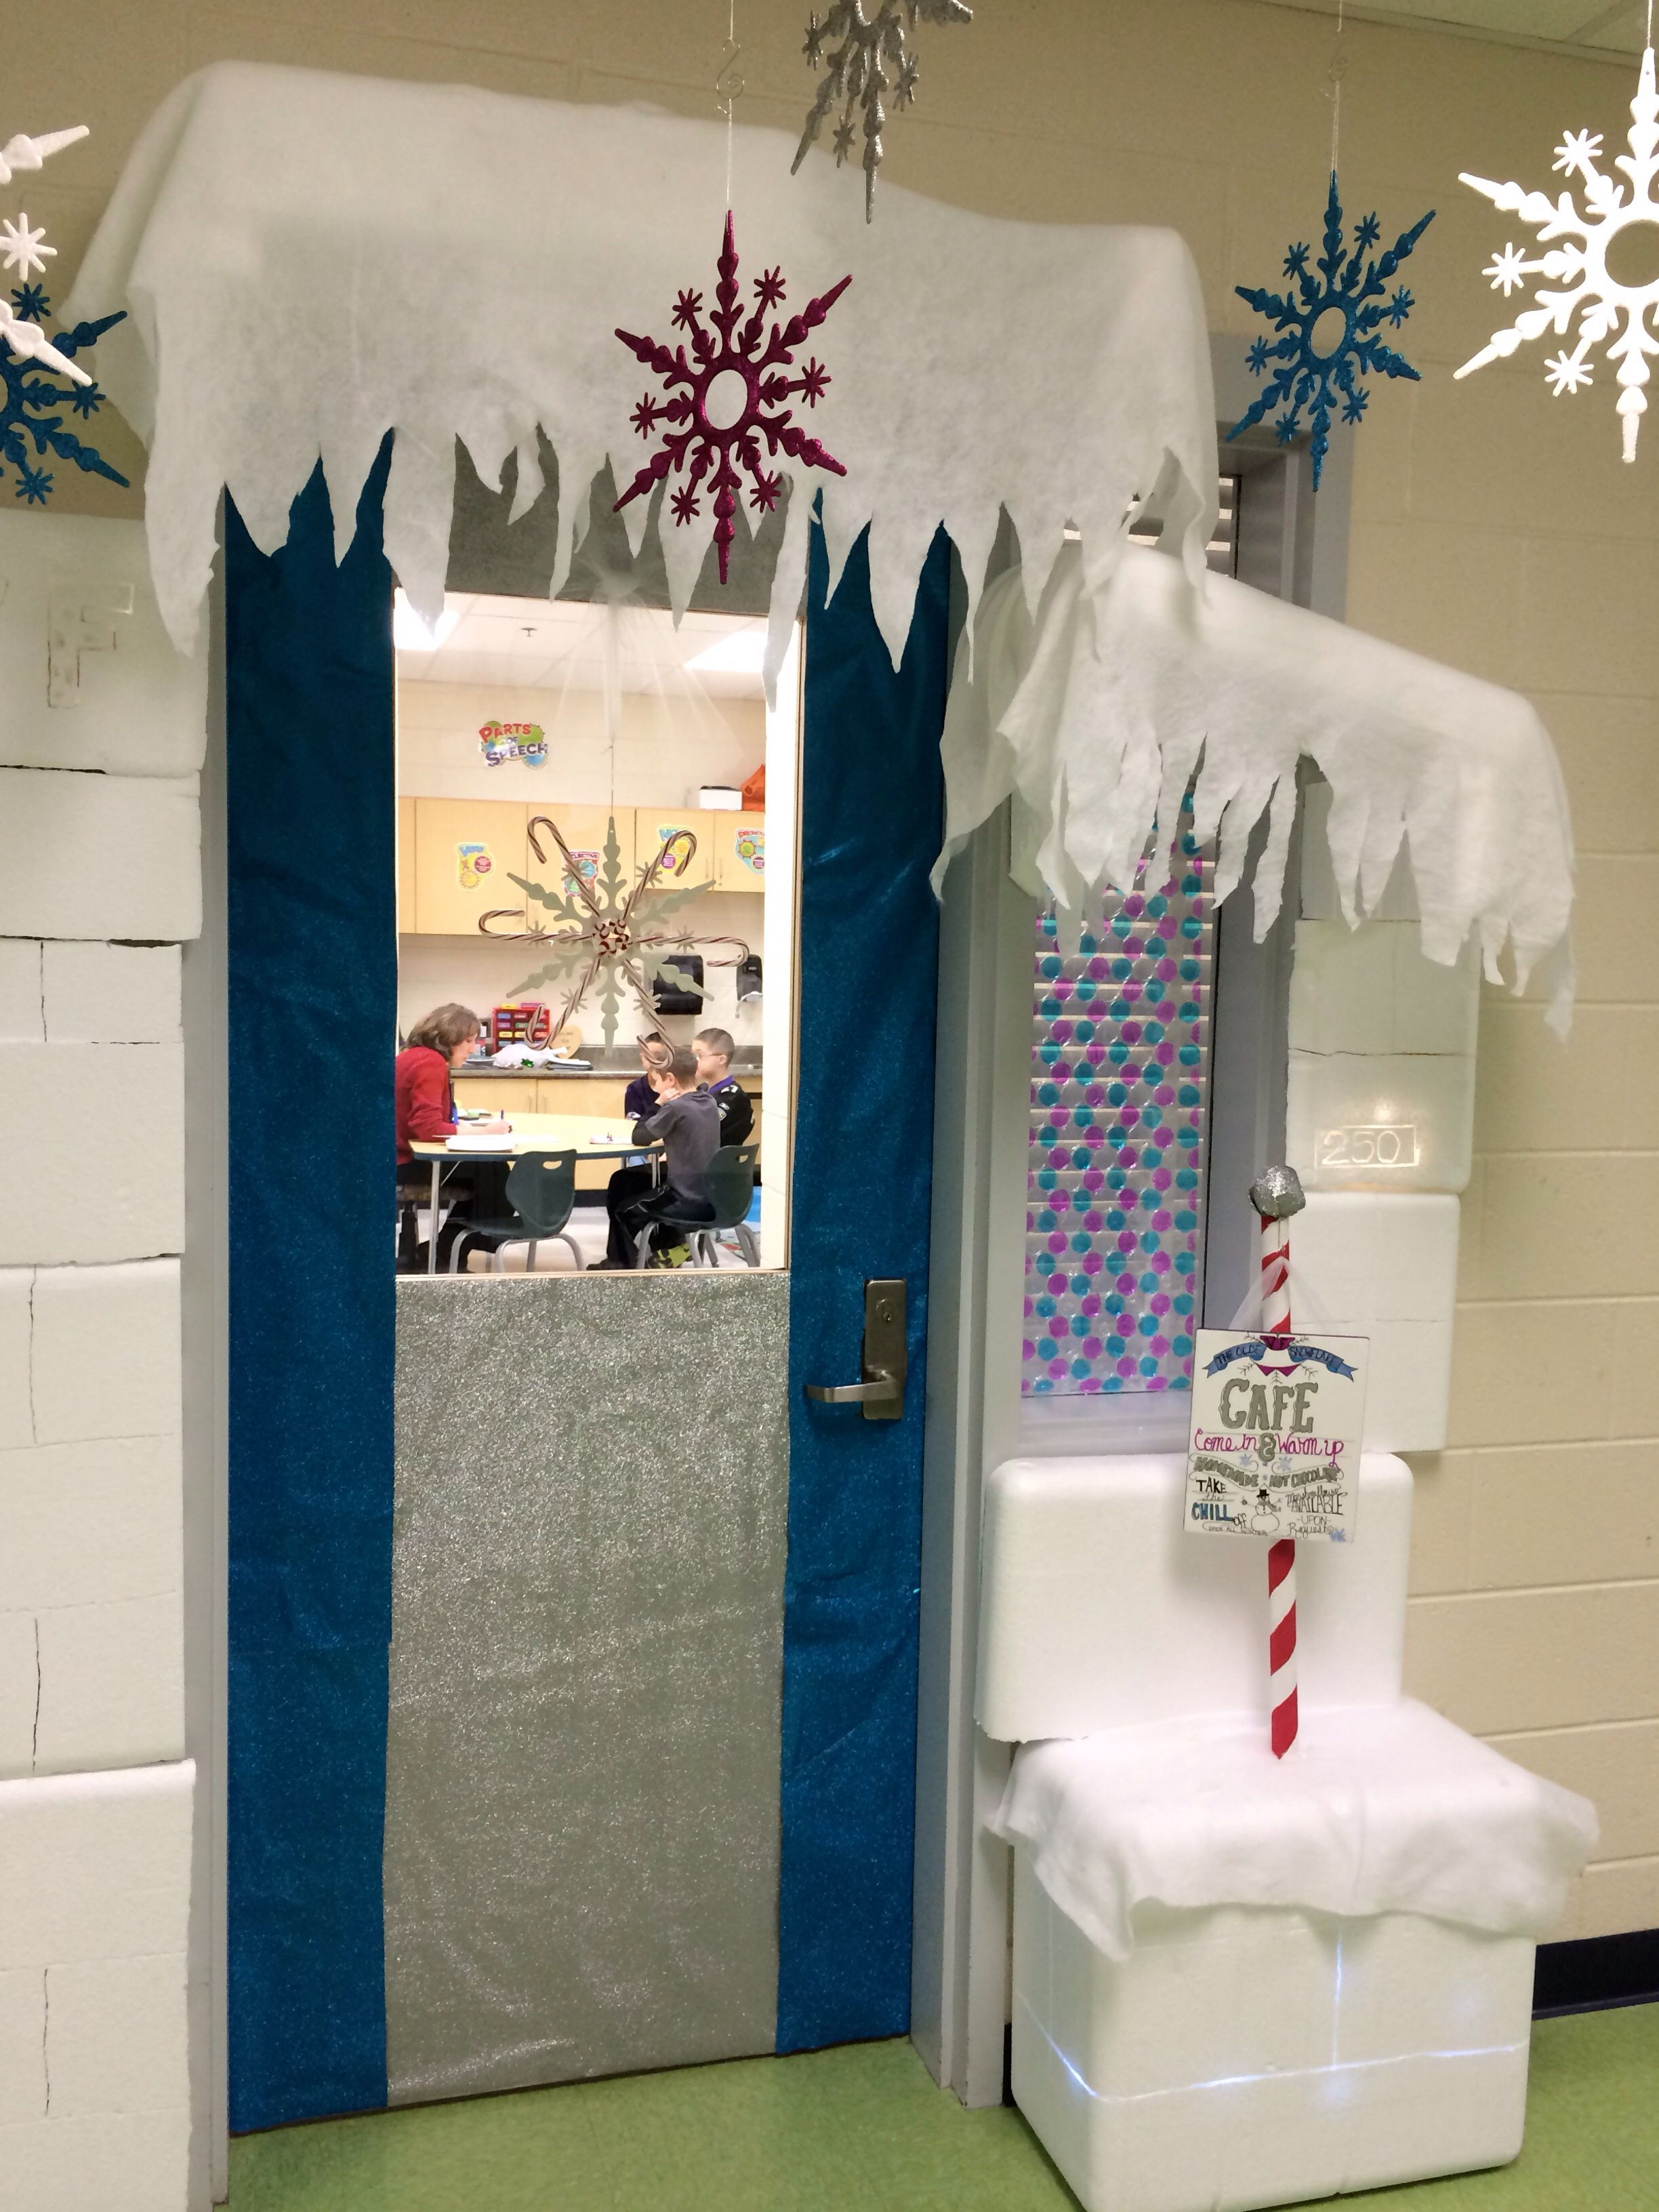 Classroom Door Decoration Ideas For Winter ~ My winter wonderland classroom door ran over to the speech